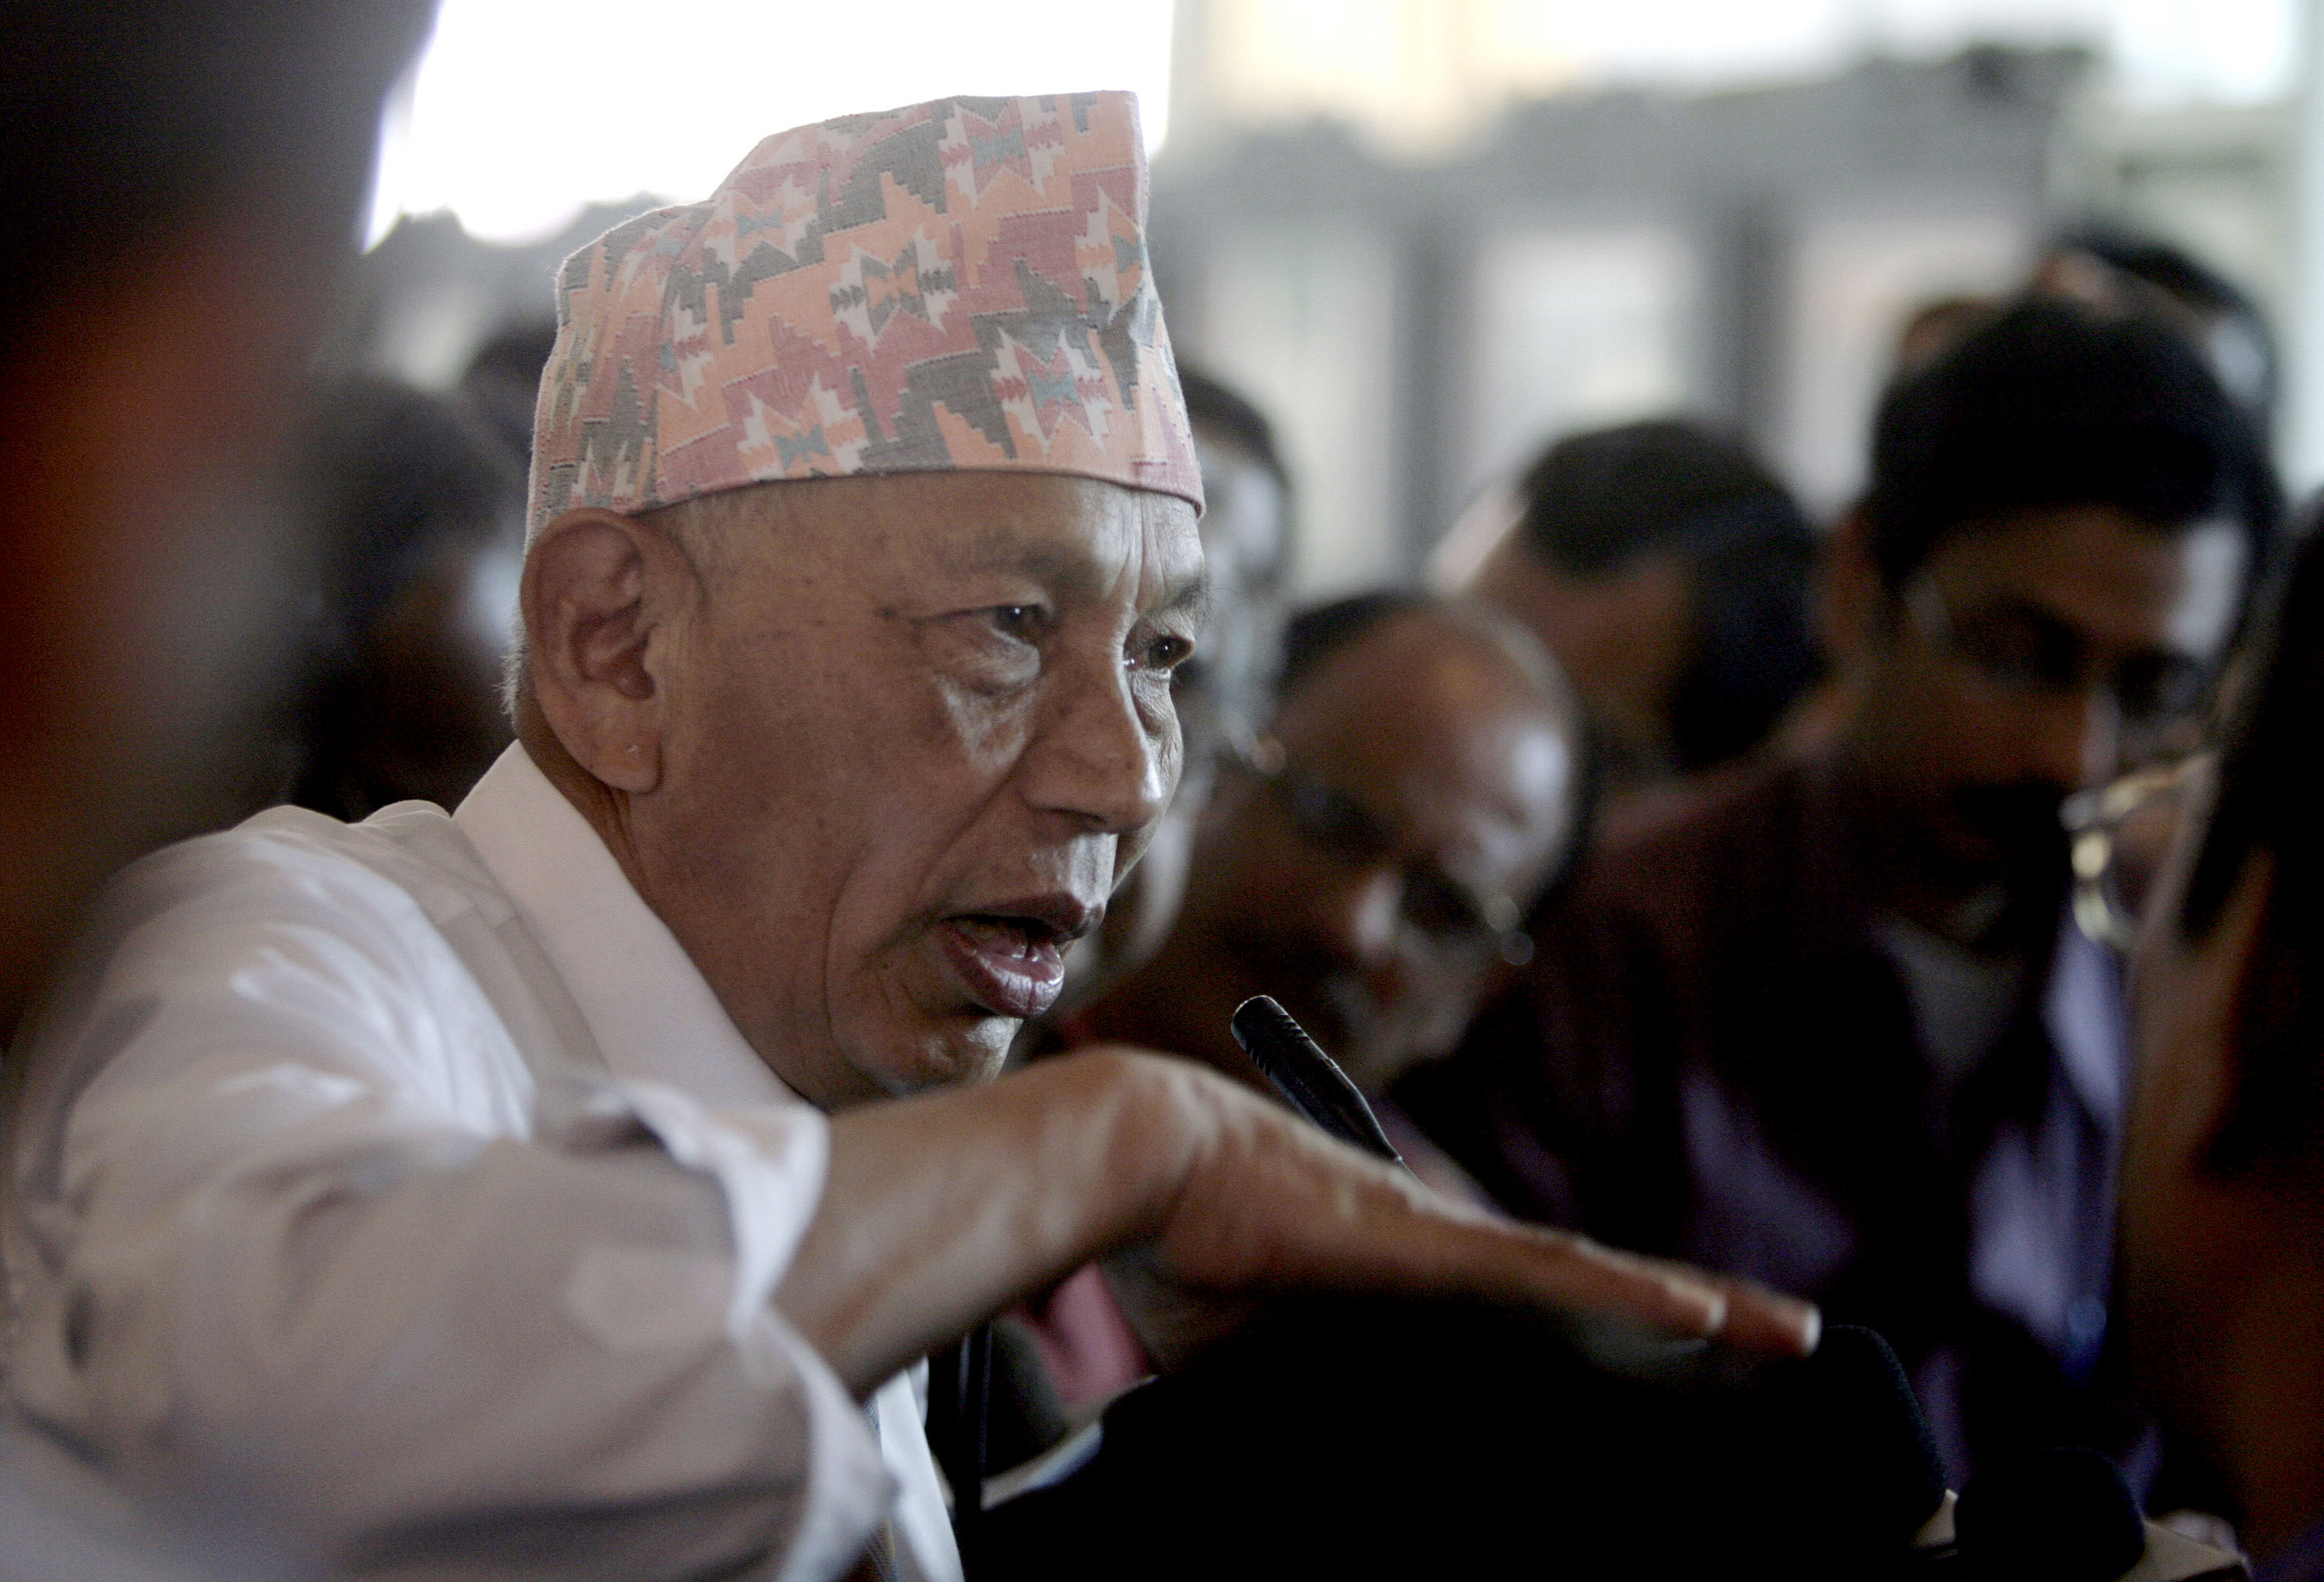 Sub hash Ghising addresses a press conference in Kolkata on February 23, 2008, at the beginning of his forced exile from Darjeeling. (Credit: Deshakalyan Chowdhury / AFP)